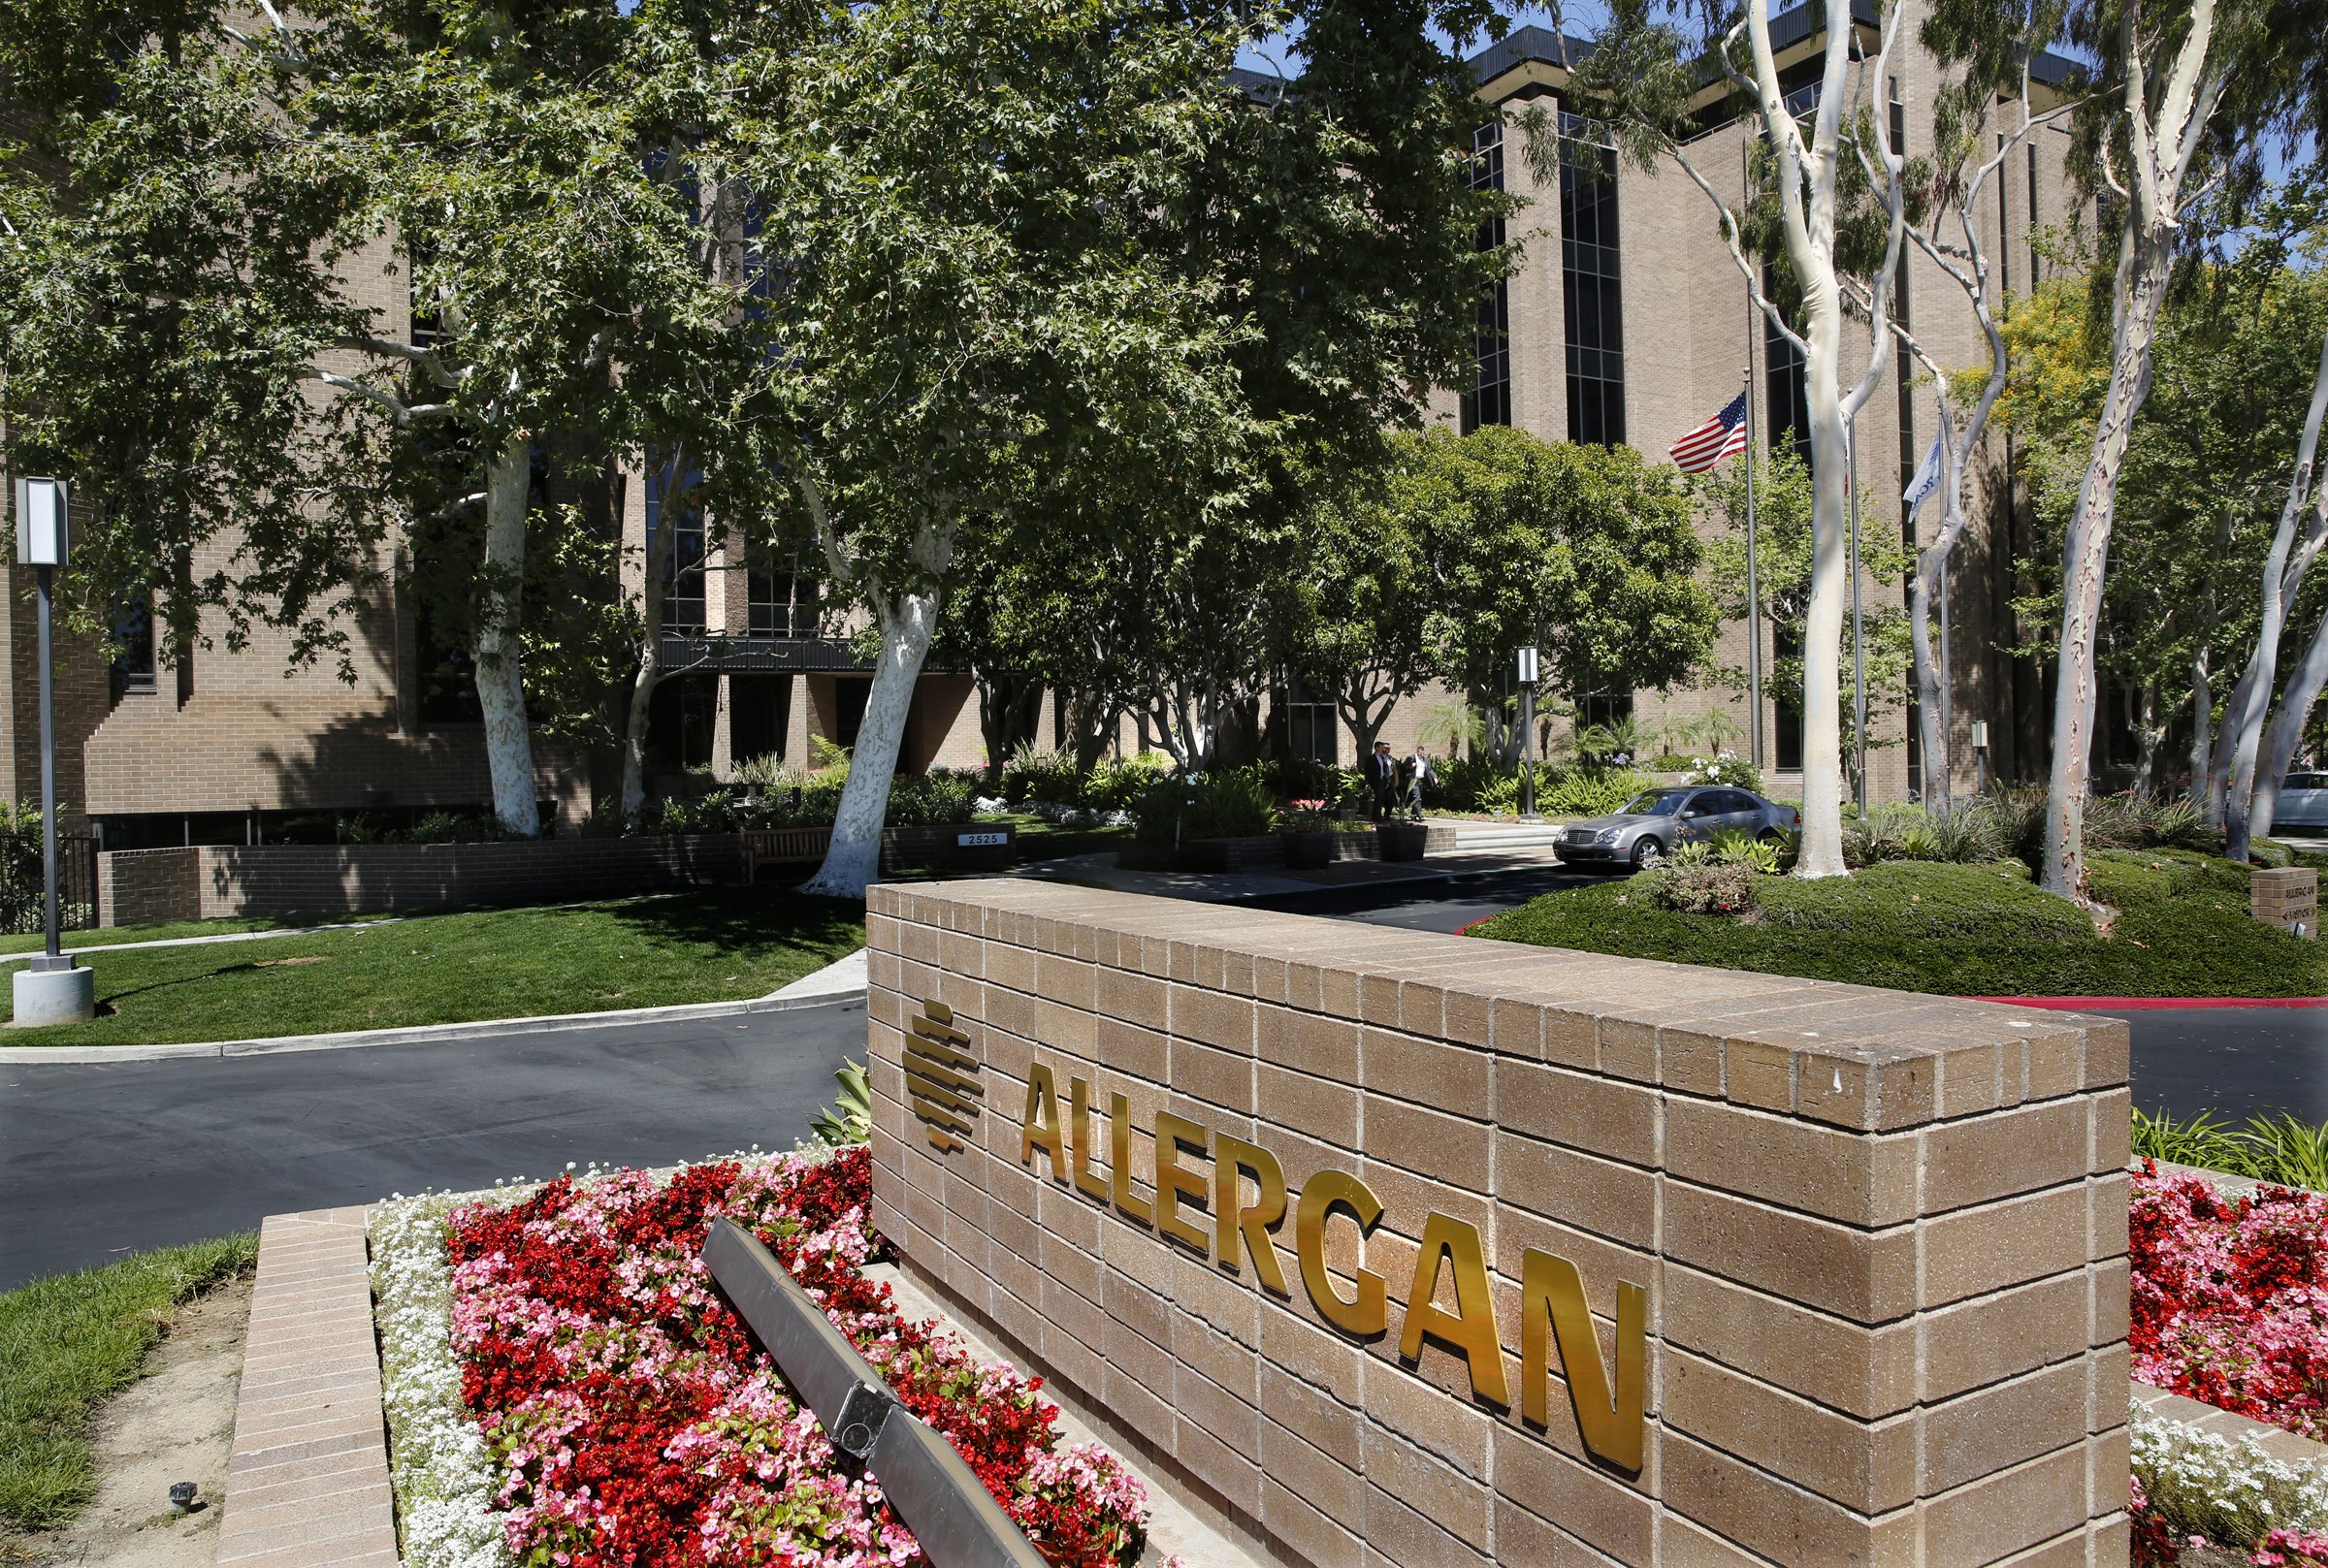 The CEO of Valeant Pharmaceuticals has suggested that Allergan is fat, overstaffed and ripe for big